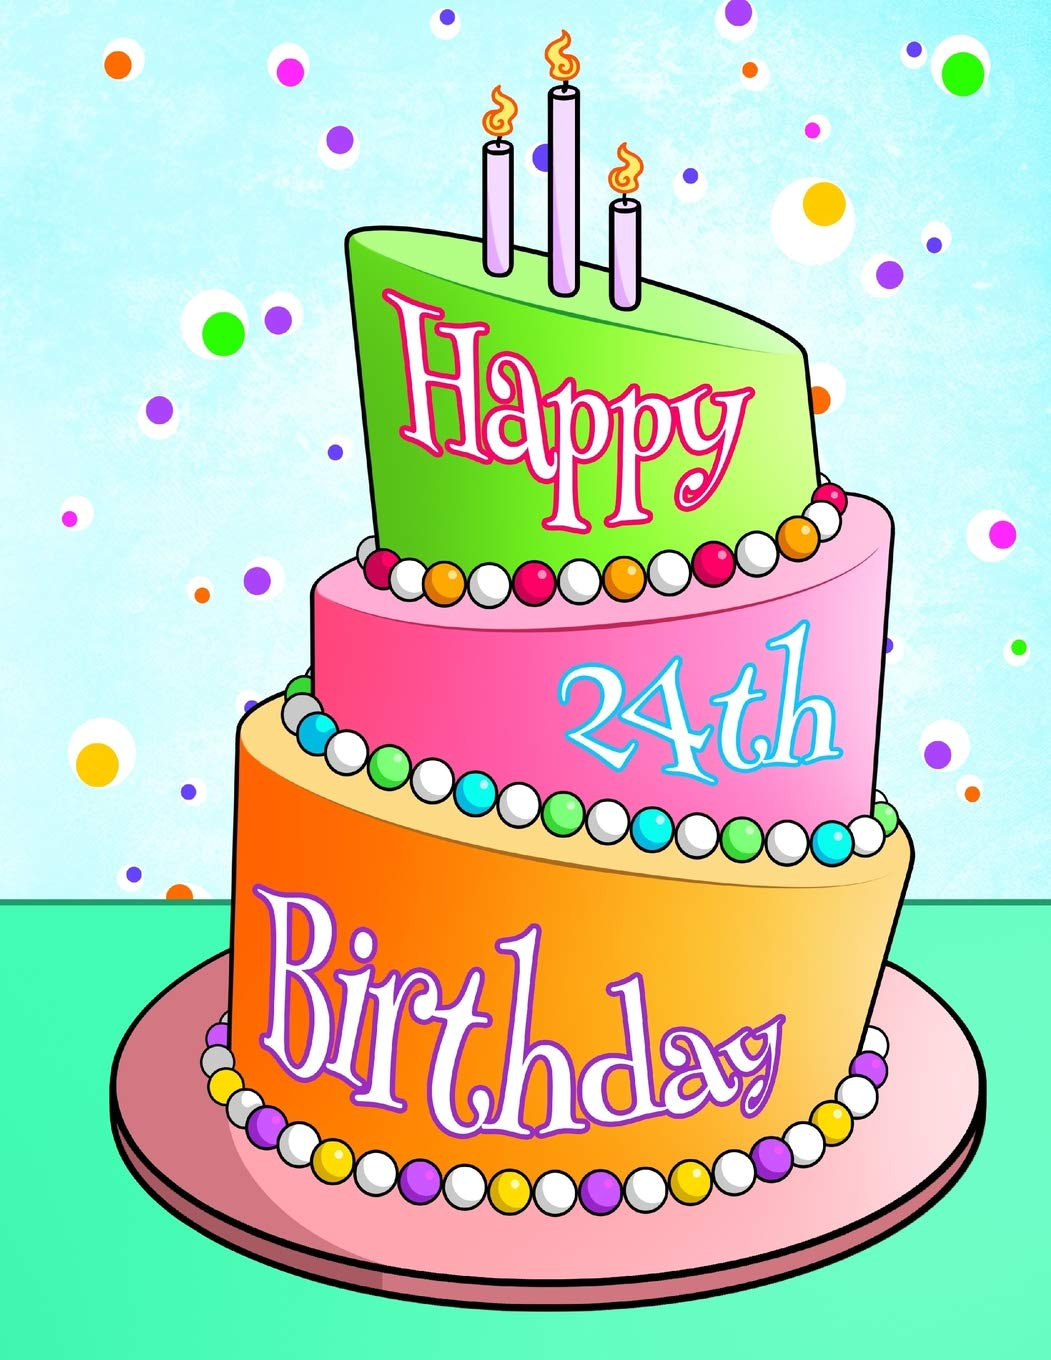 Astounding Happy 24Th Birthday Birthday Cake With Candles Themed Book Use Personalised Birthday Cards Veneteletsinfo